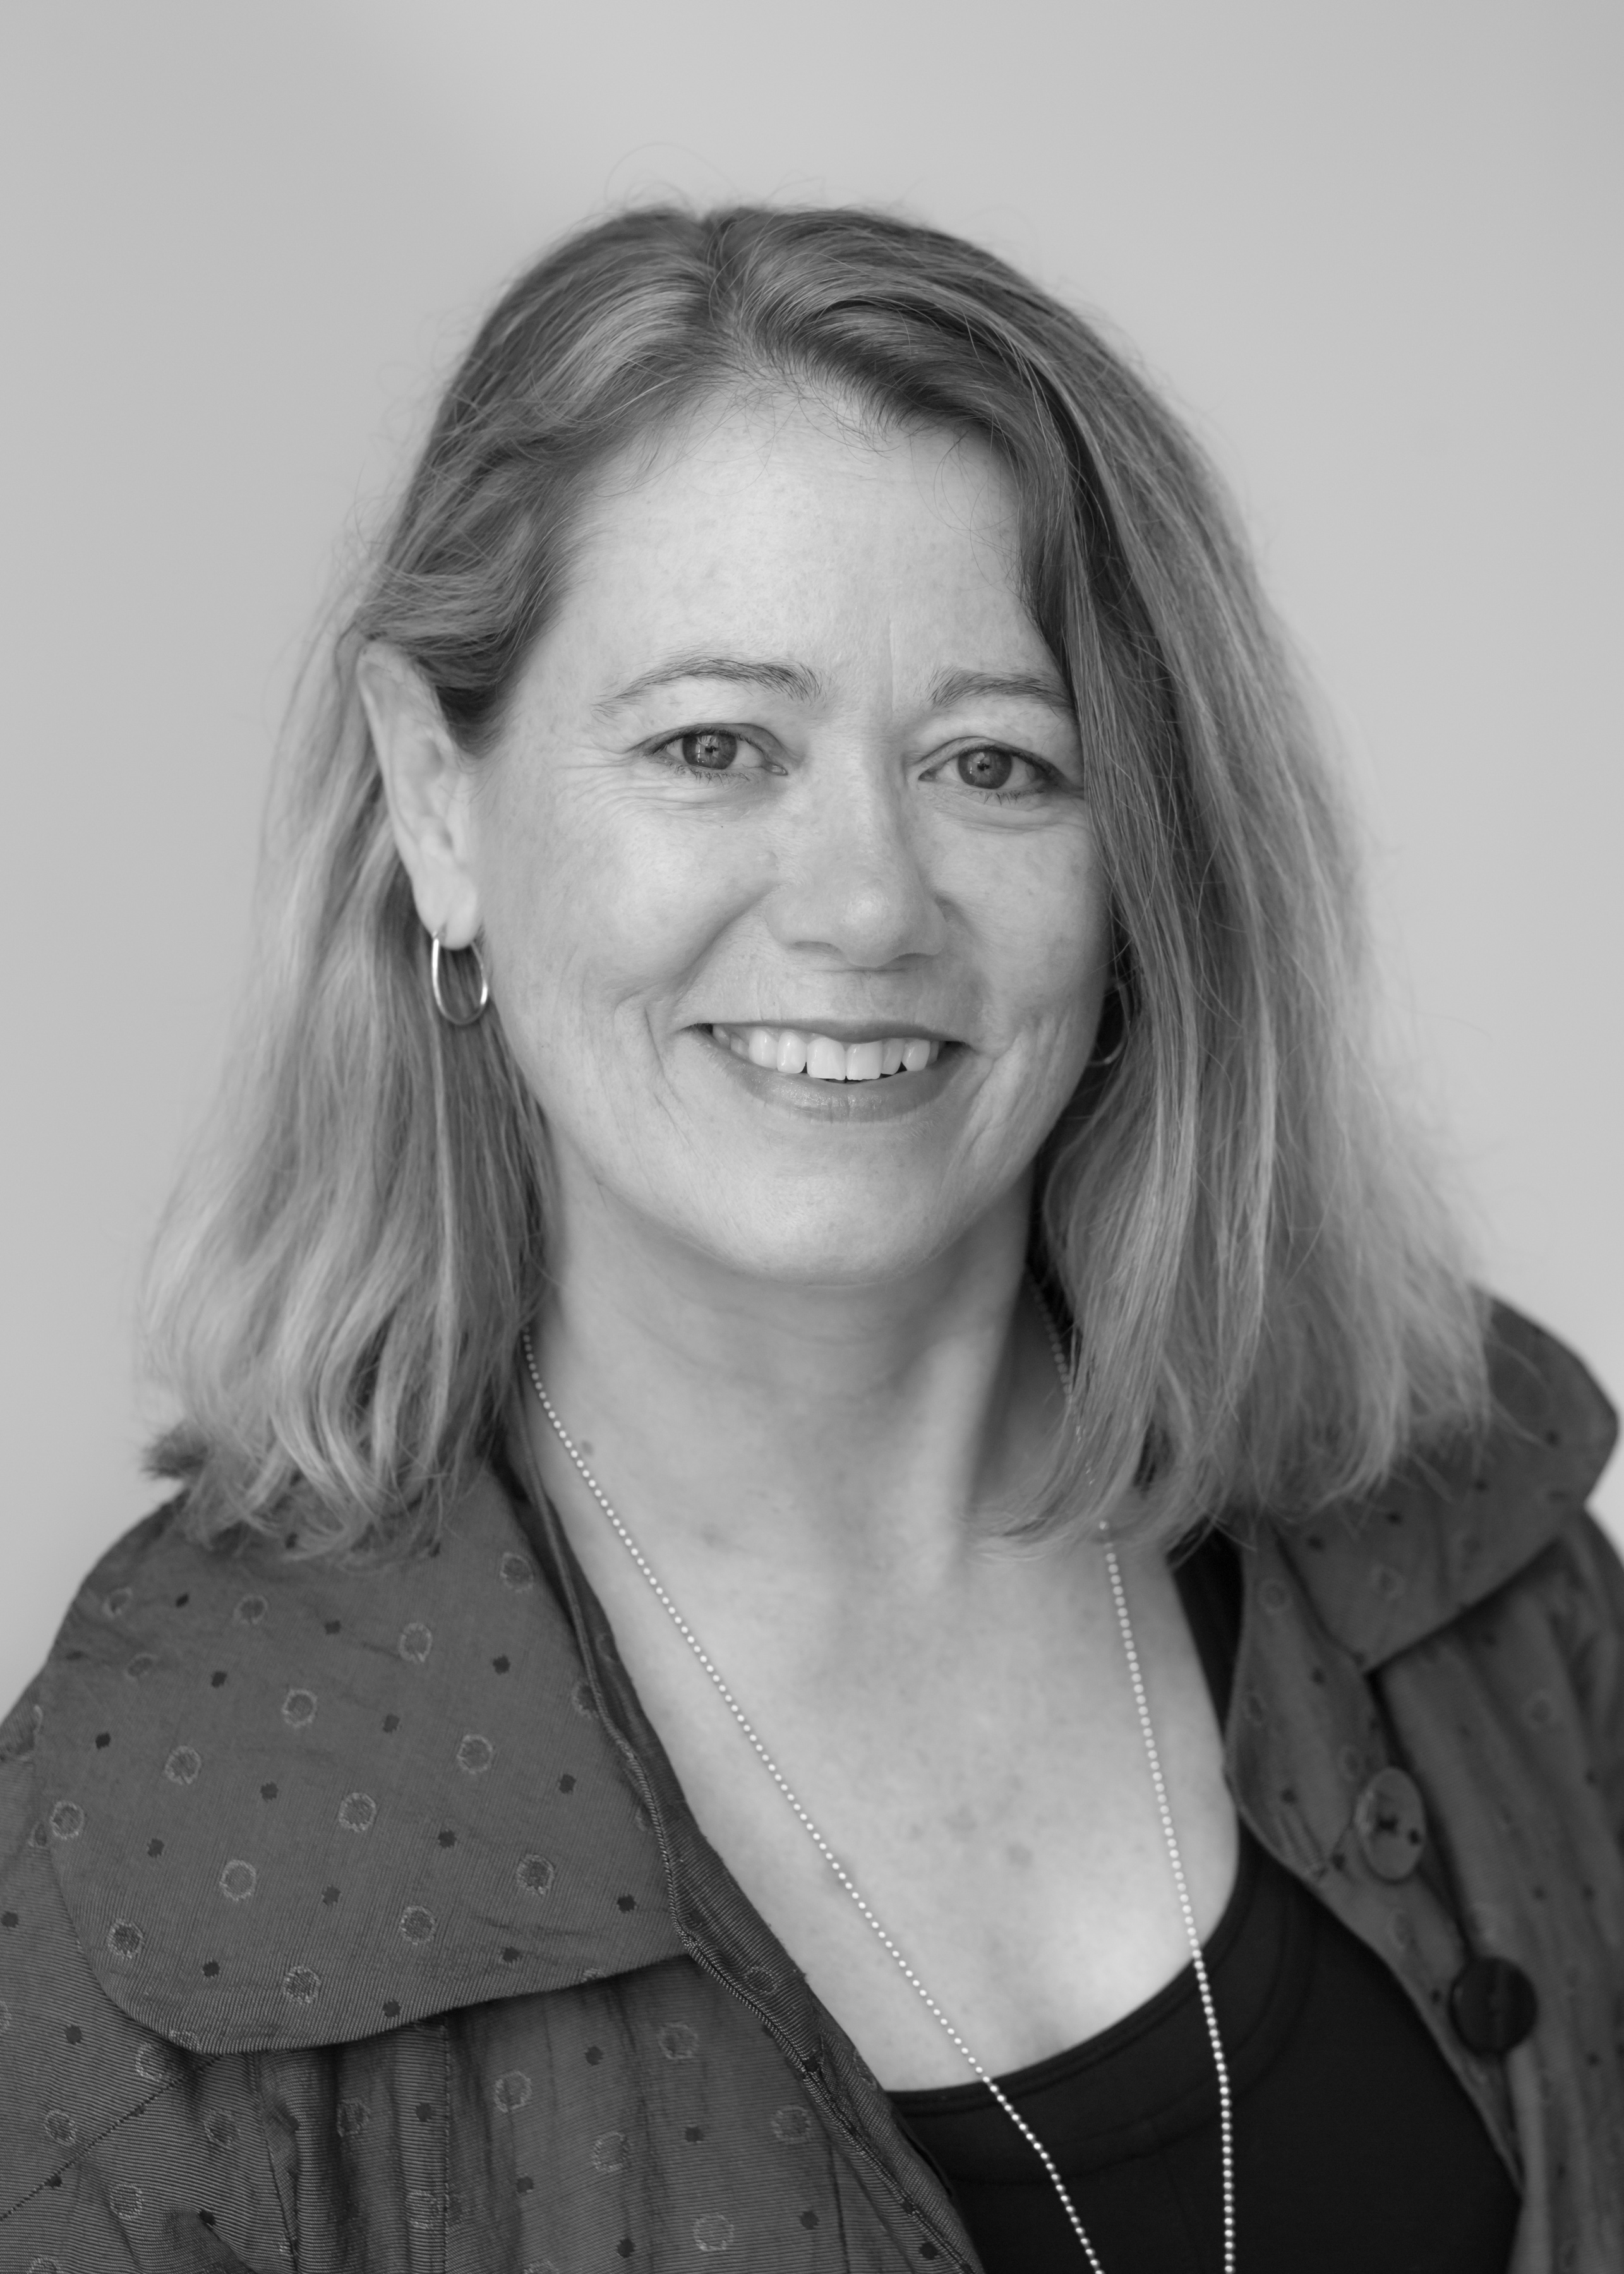 A black and white image of Michelle Brisbane, a financial planner at Ethical Investment Services.